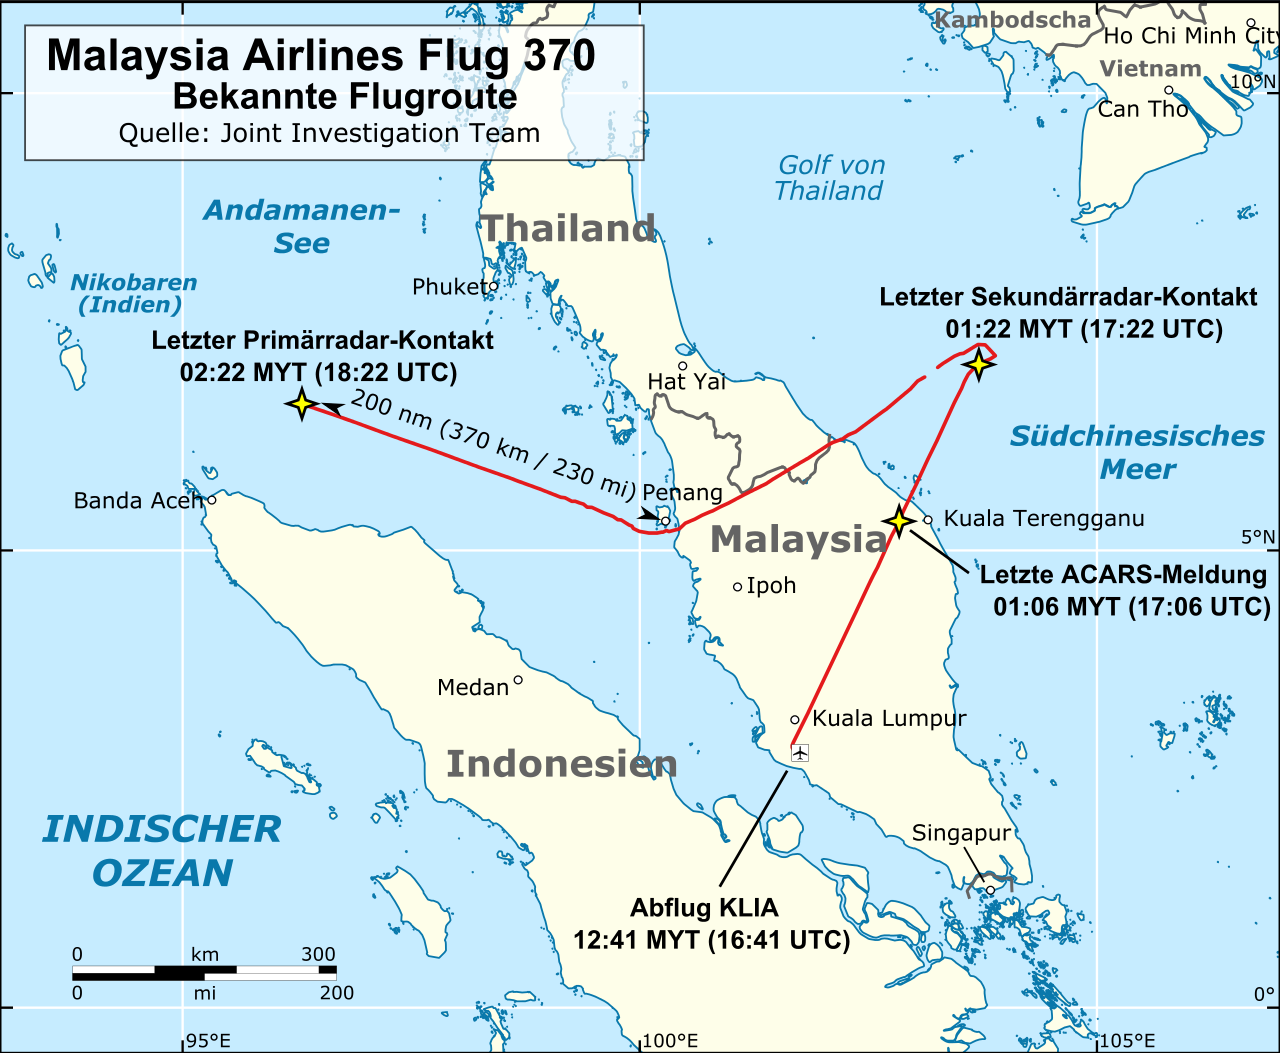 Malaysia Airlines Flight 370 Known Fligh